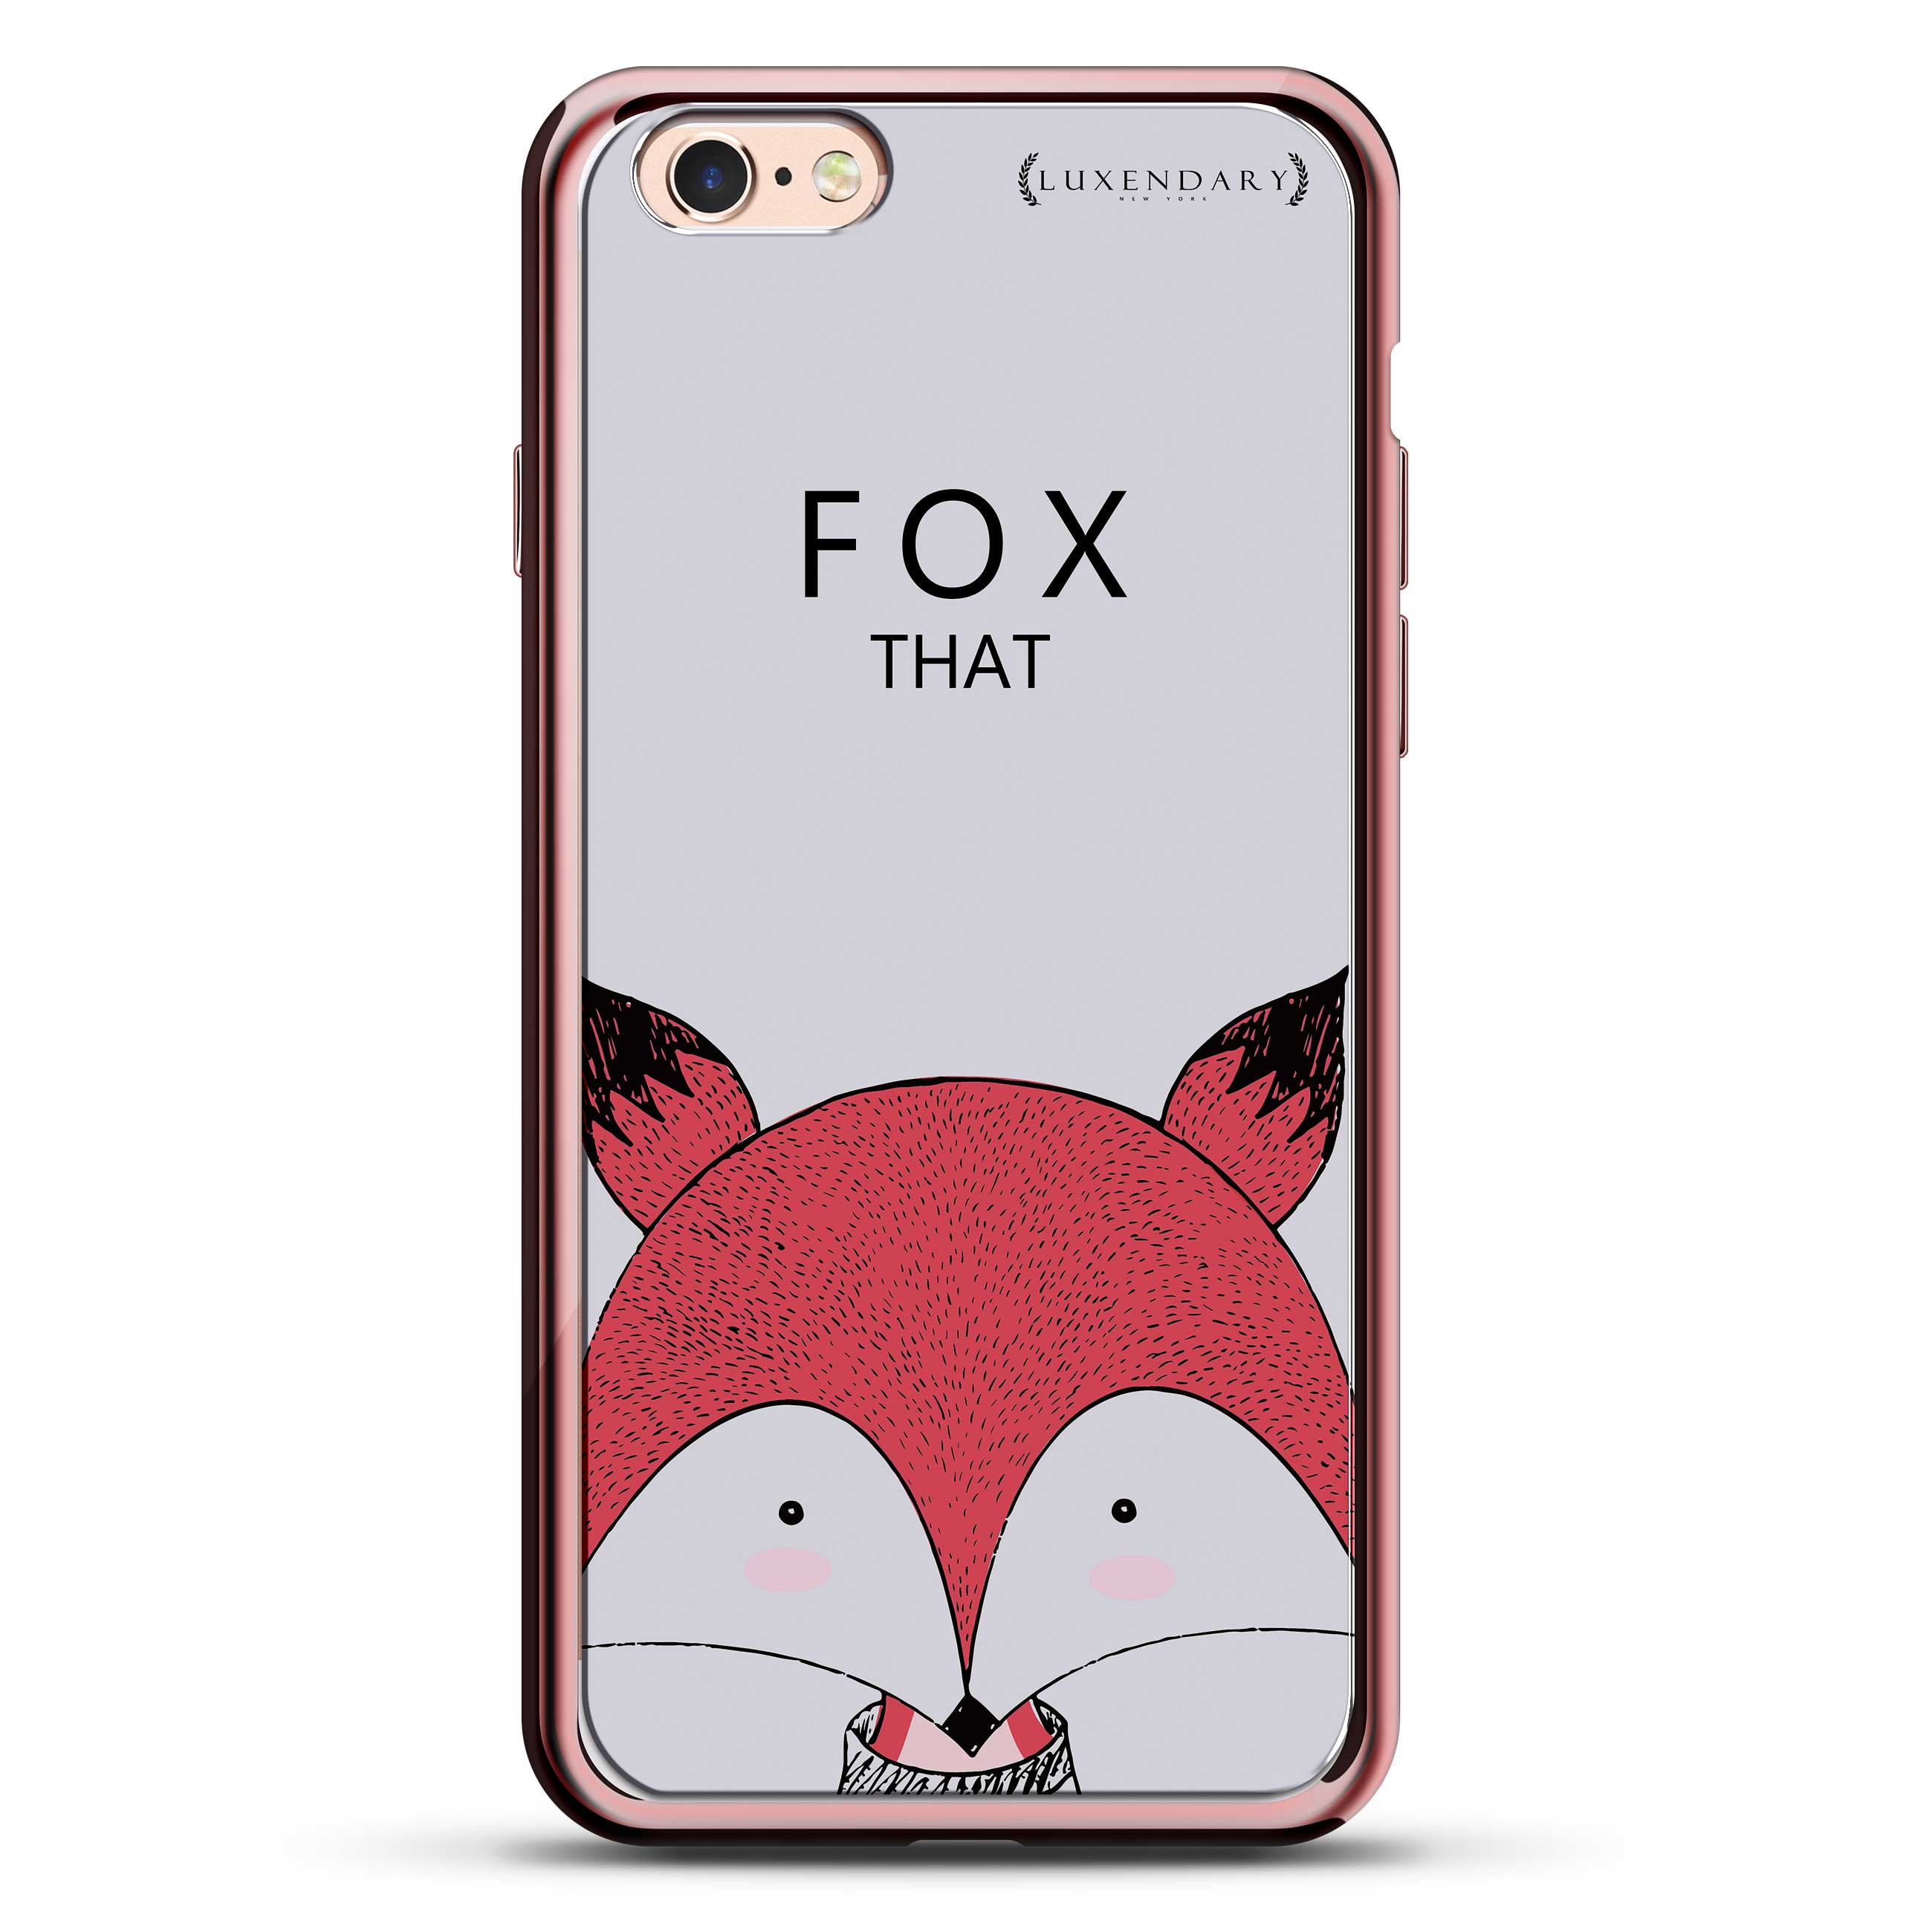 Fox All That 3D